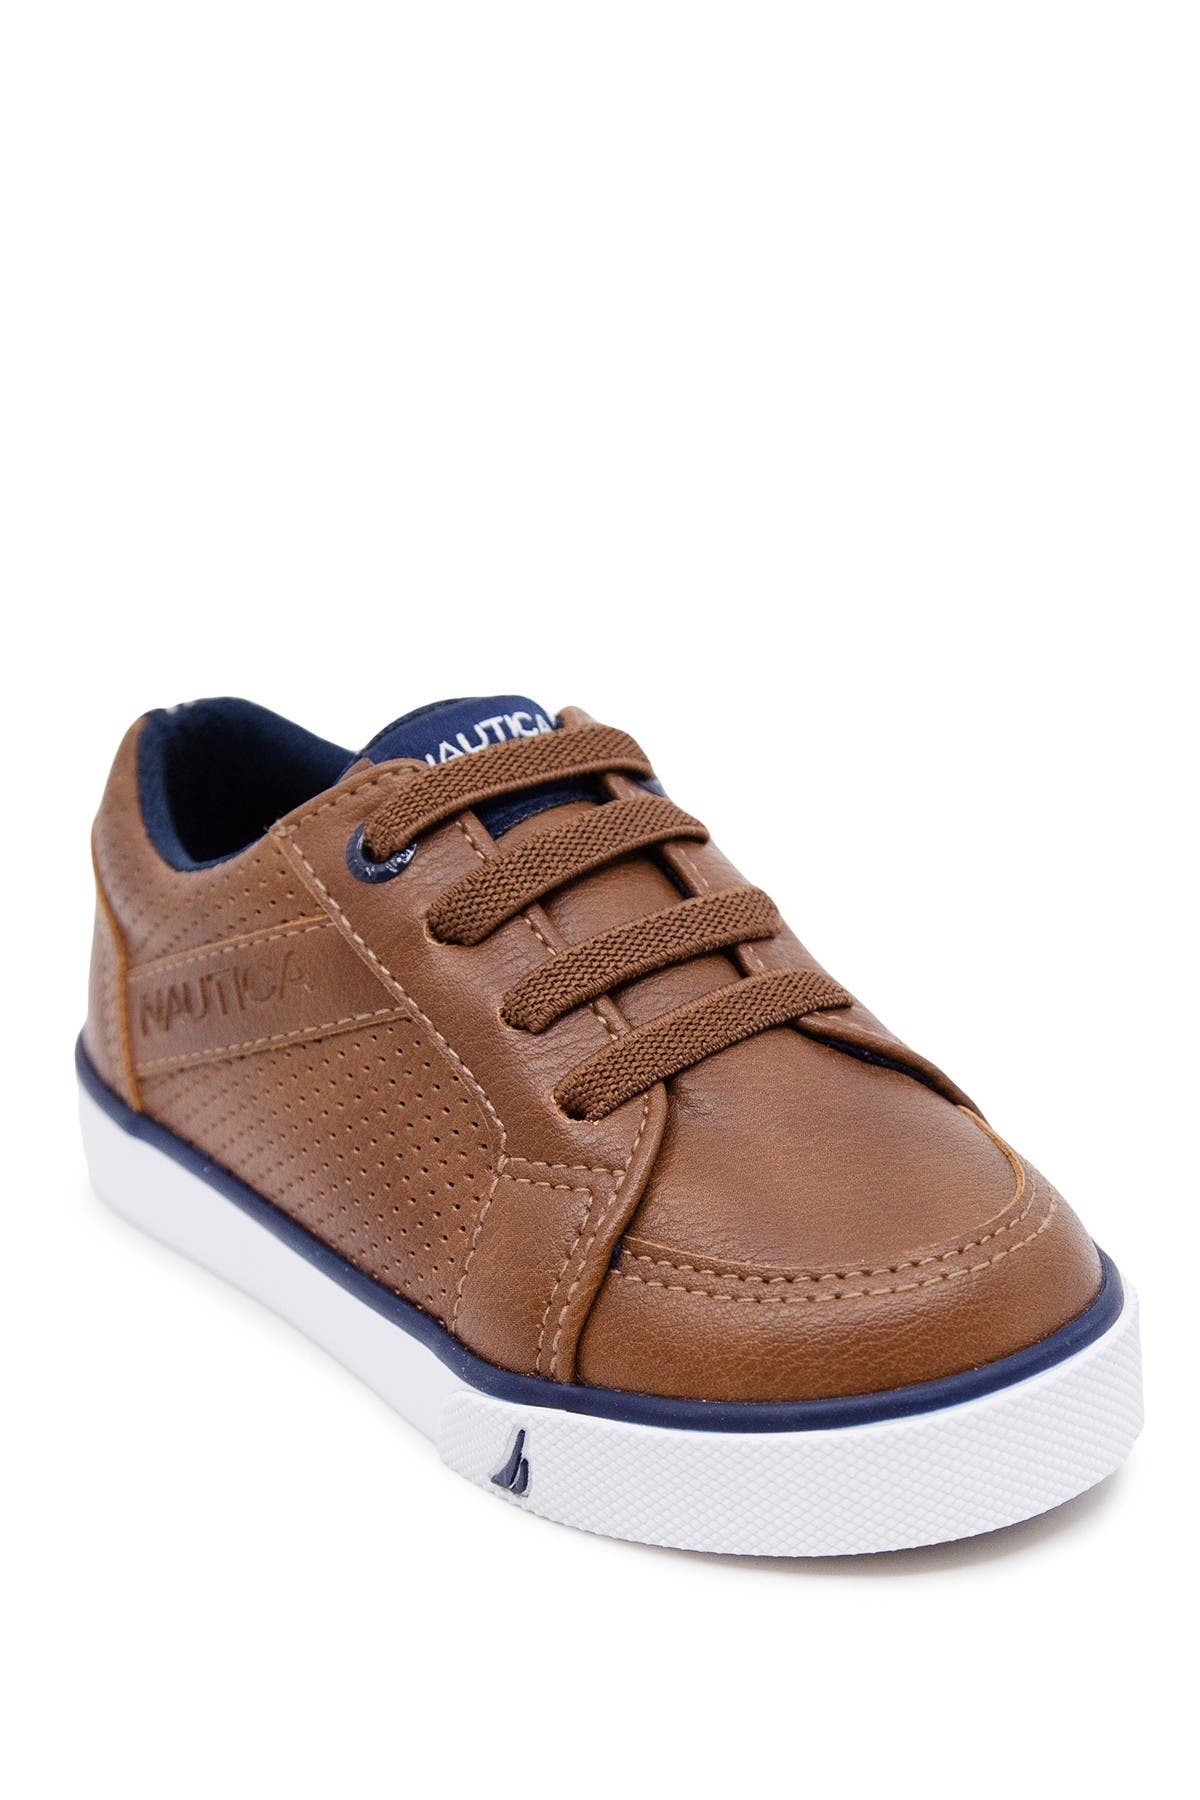 Image of Nautica Perforated Low Top Sneaker